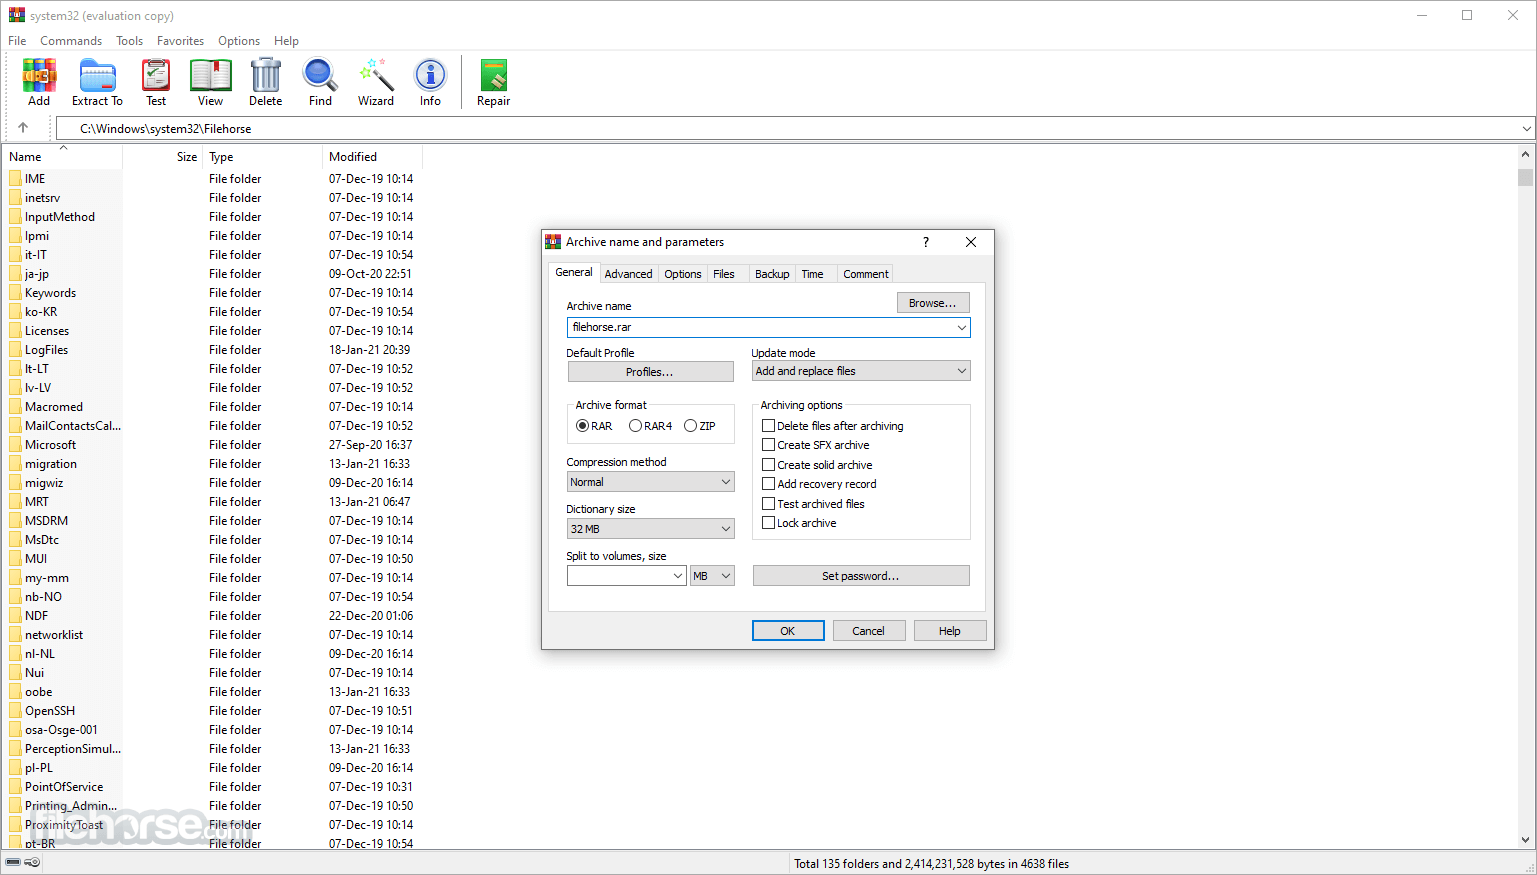 WinRAR 5.50 Beta 4 (32-bit) Screenshot 2